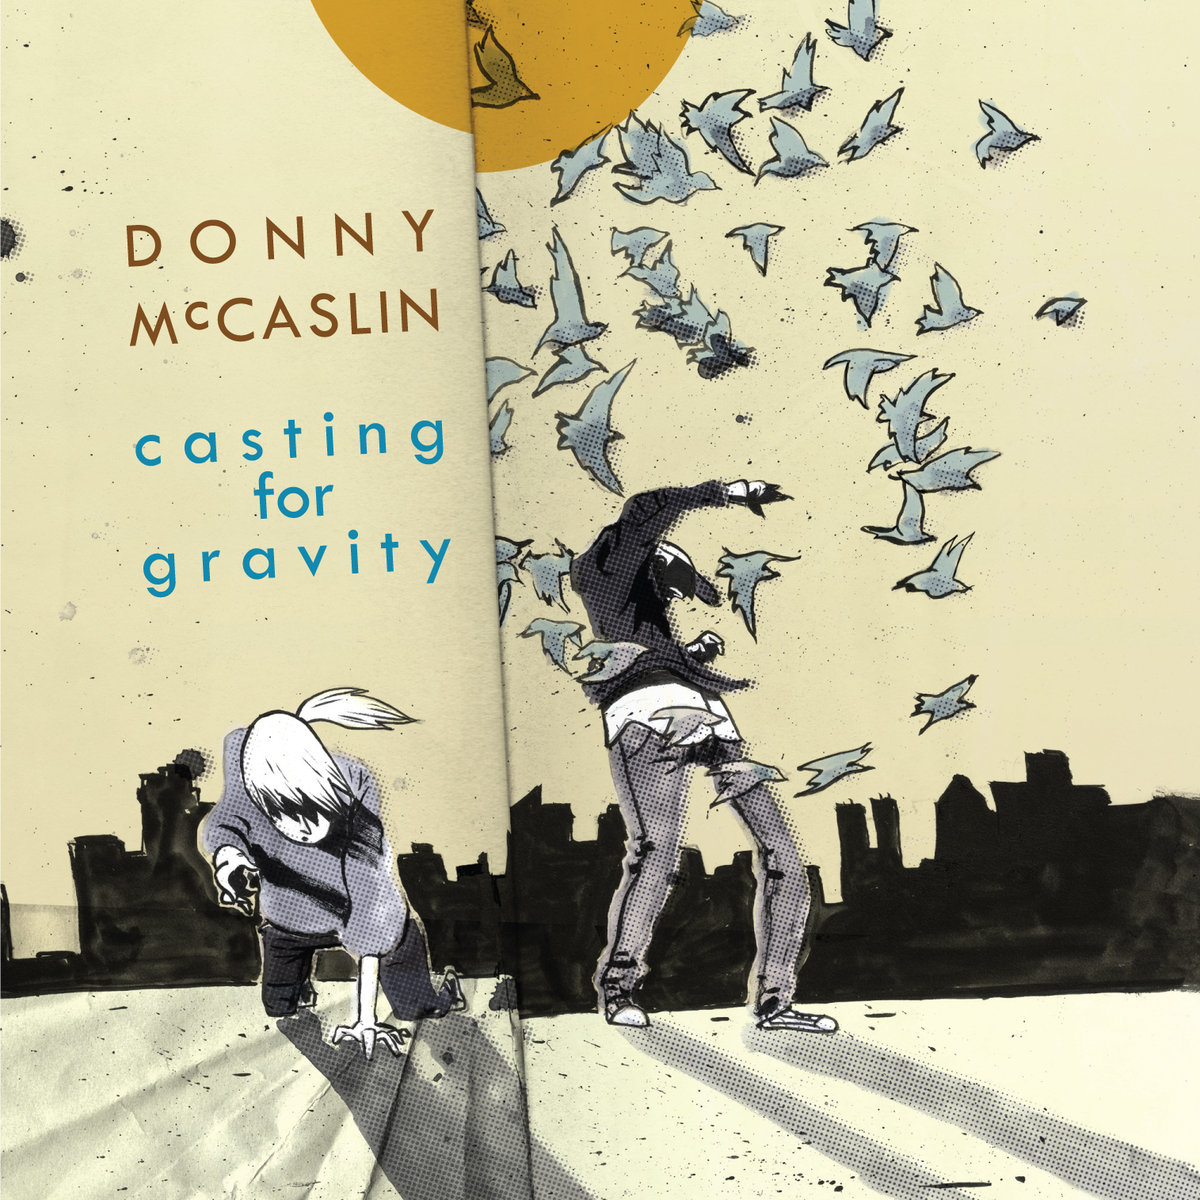 DONNY MCCASLIN / CASTING FOR GRAVITY